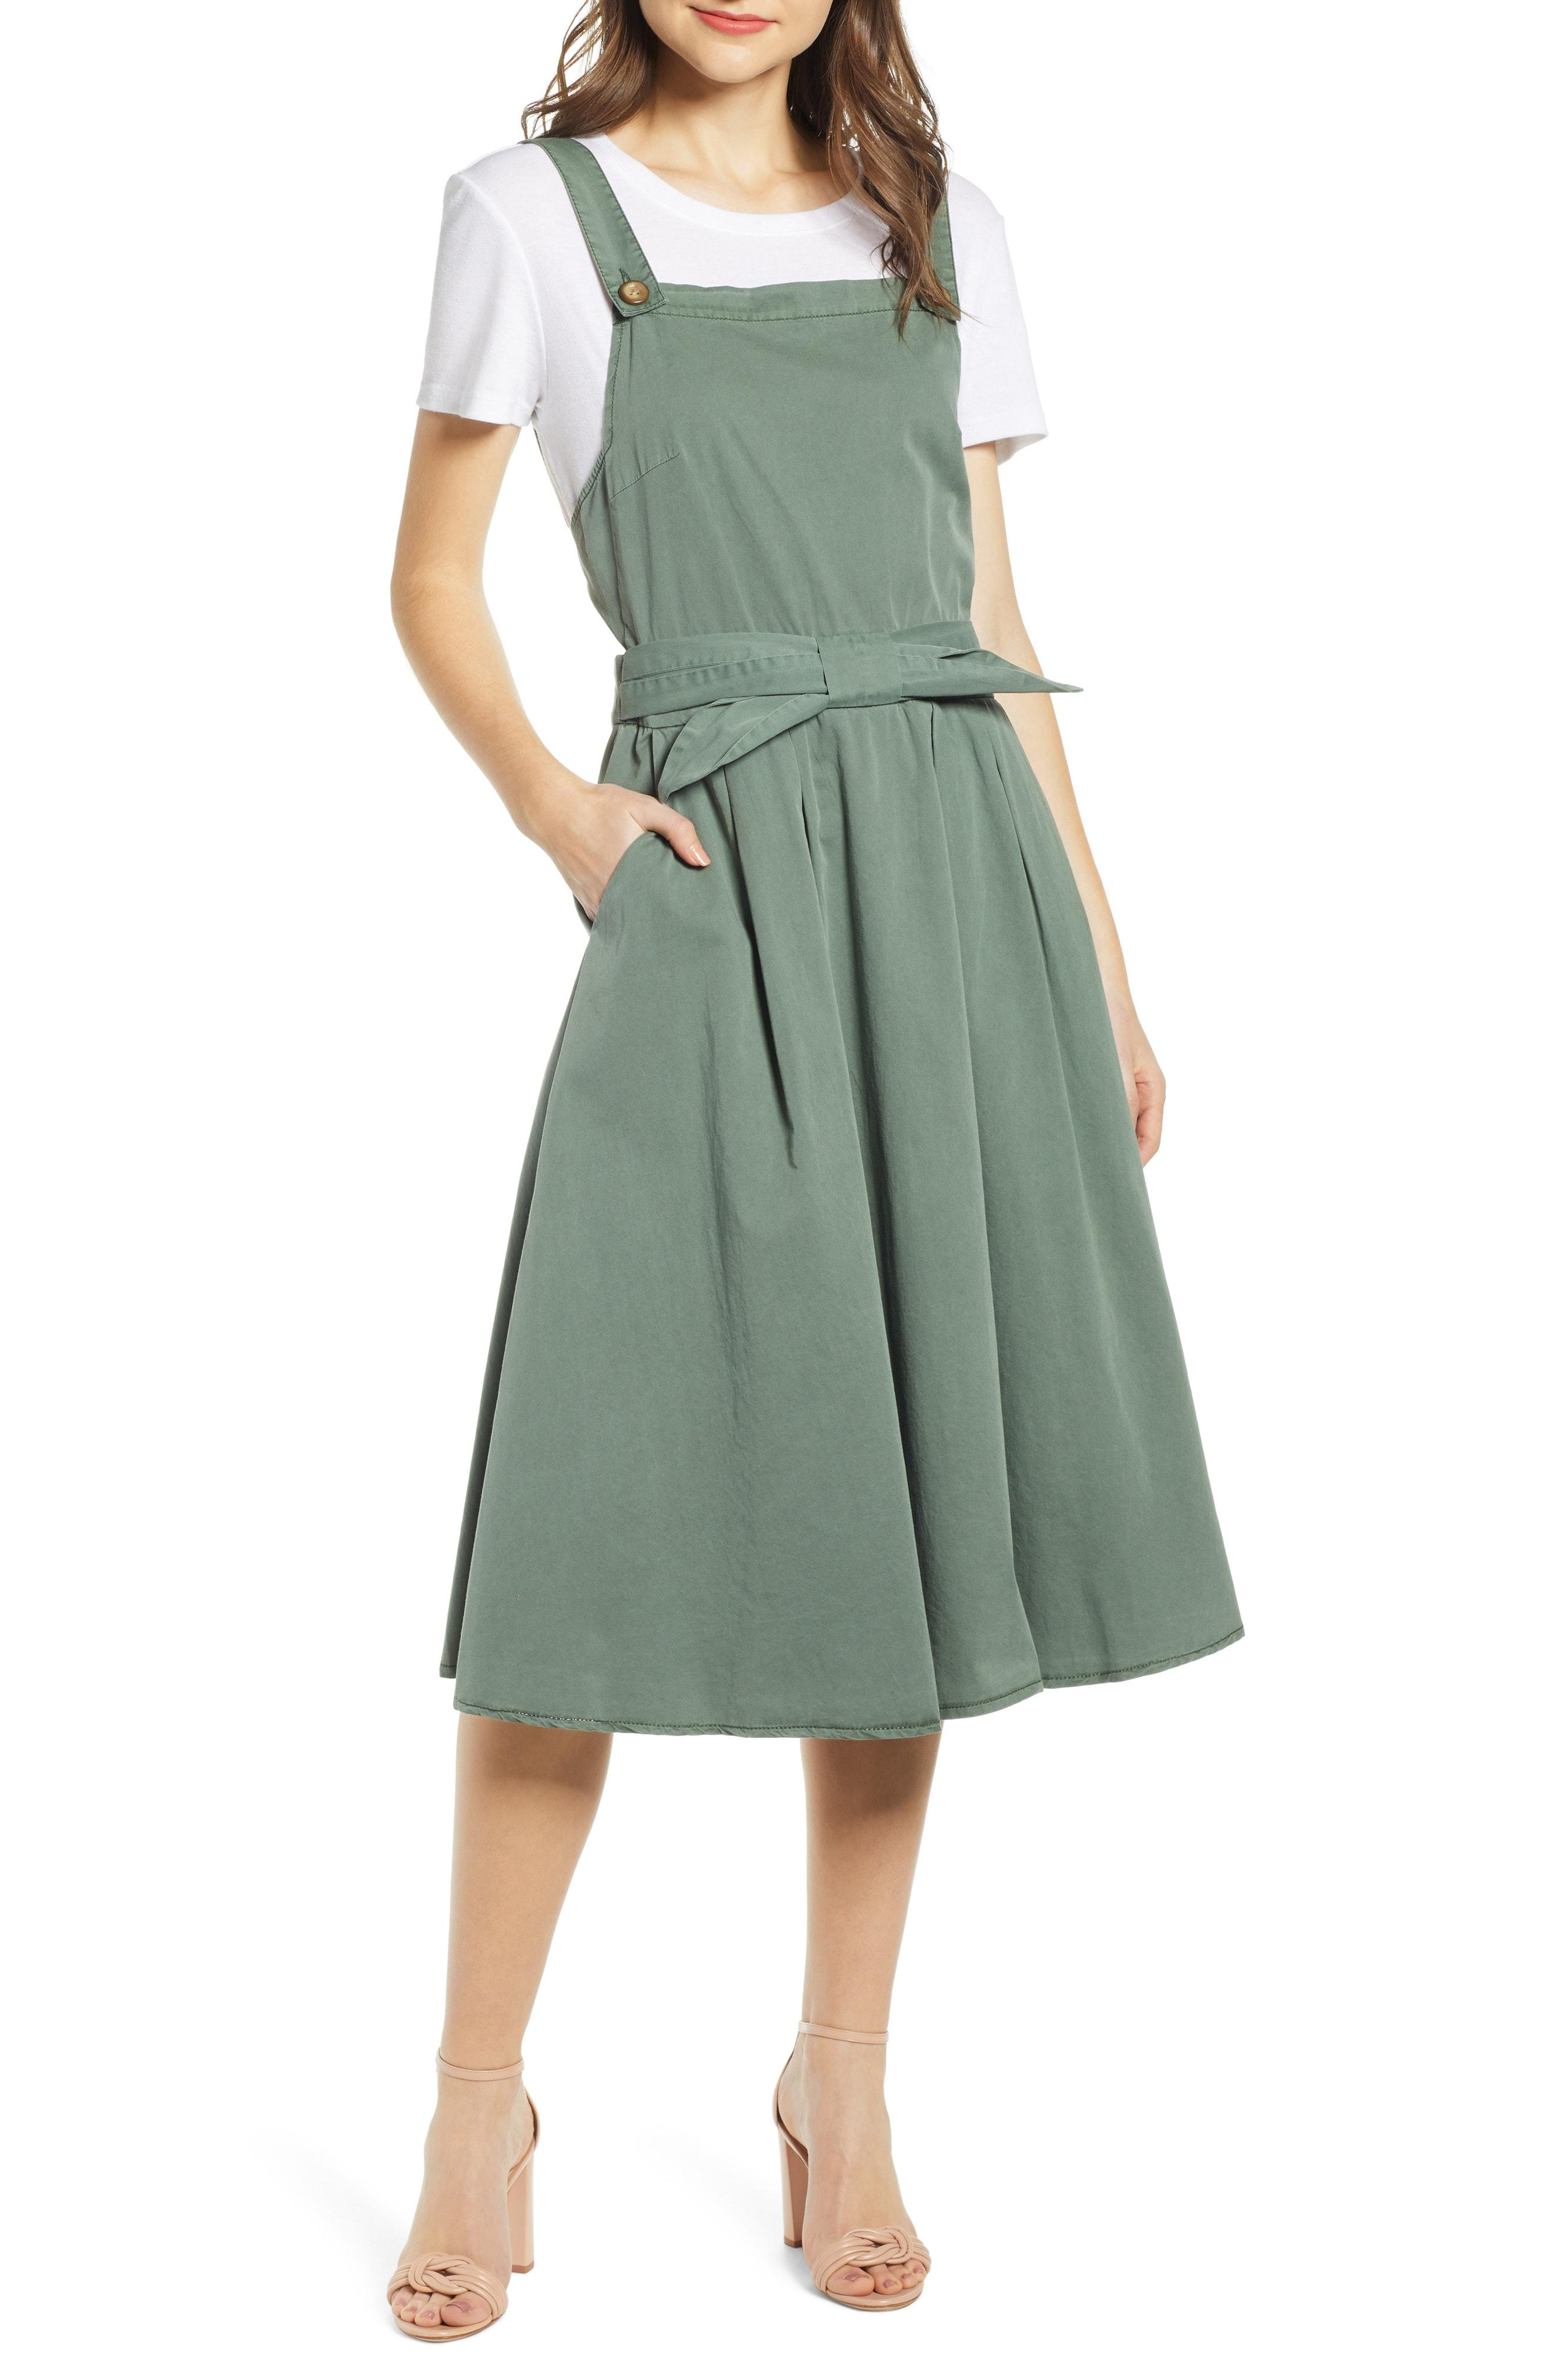 649ab5cb14a1 Lyst - Vero Moda Flame Bow Front Cotton Jumper Dress in Green